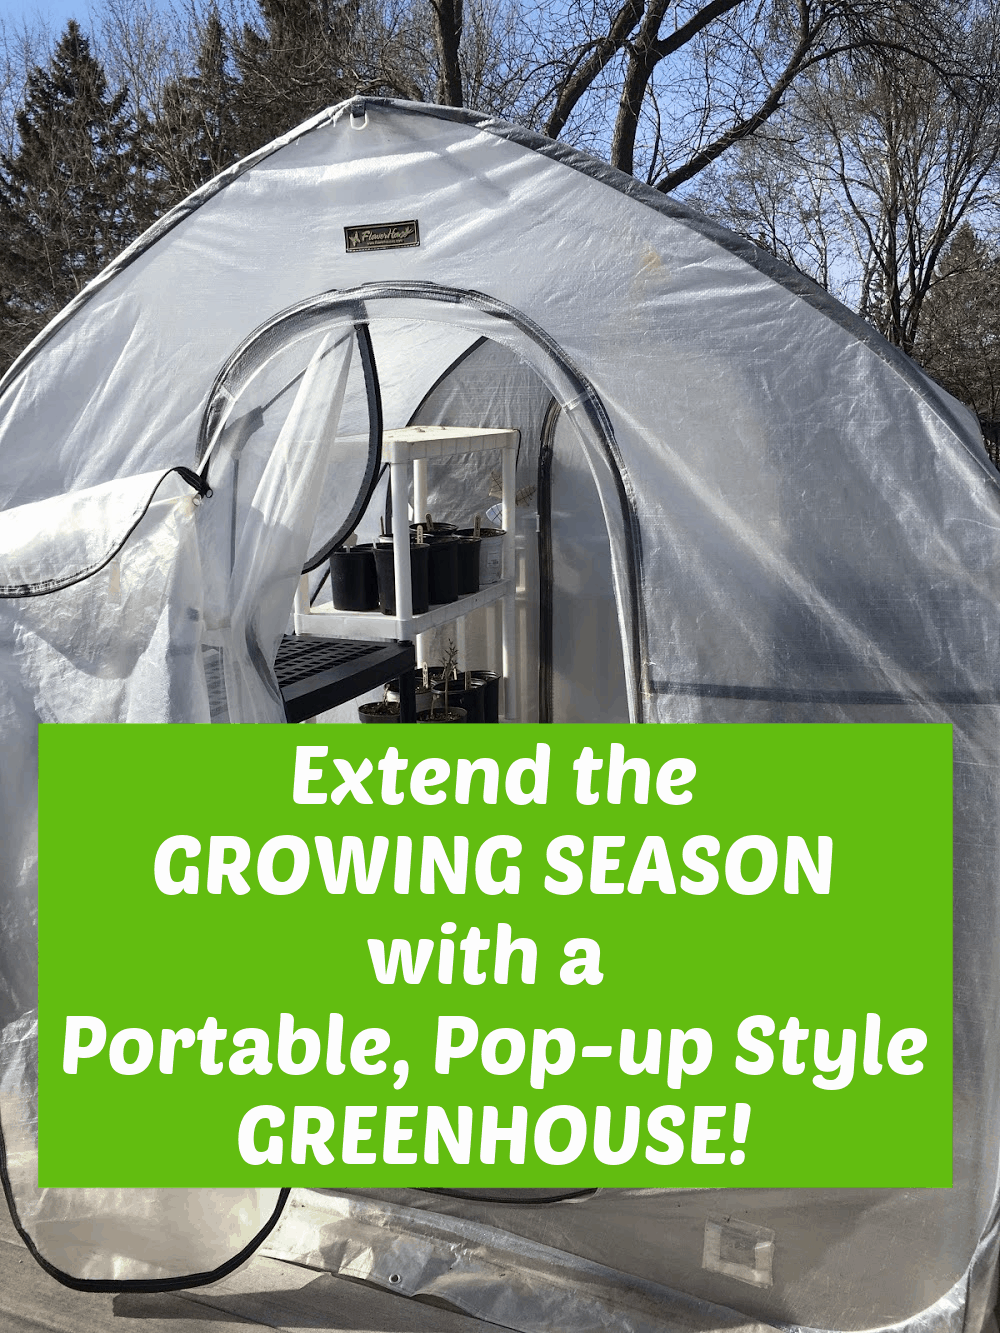 Image of a pop-up greenhouse with text overlay - extend the growing season with a pop-up style greenhouse